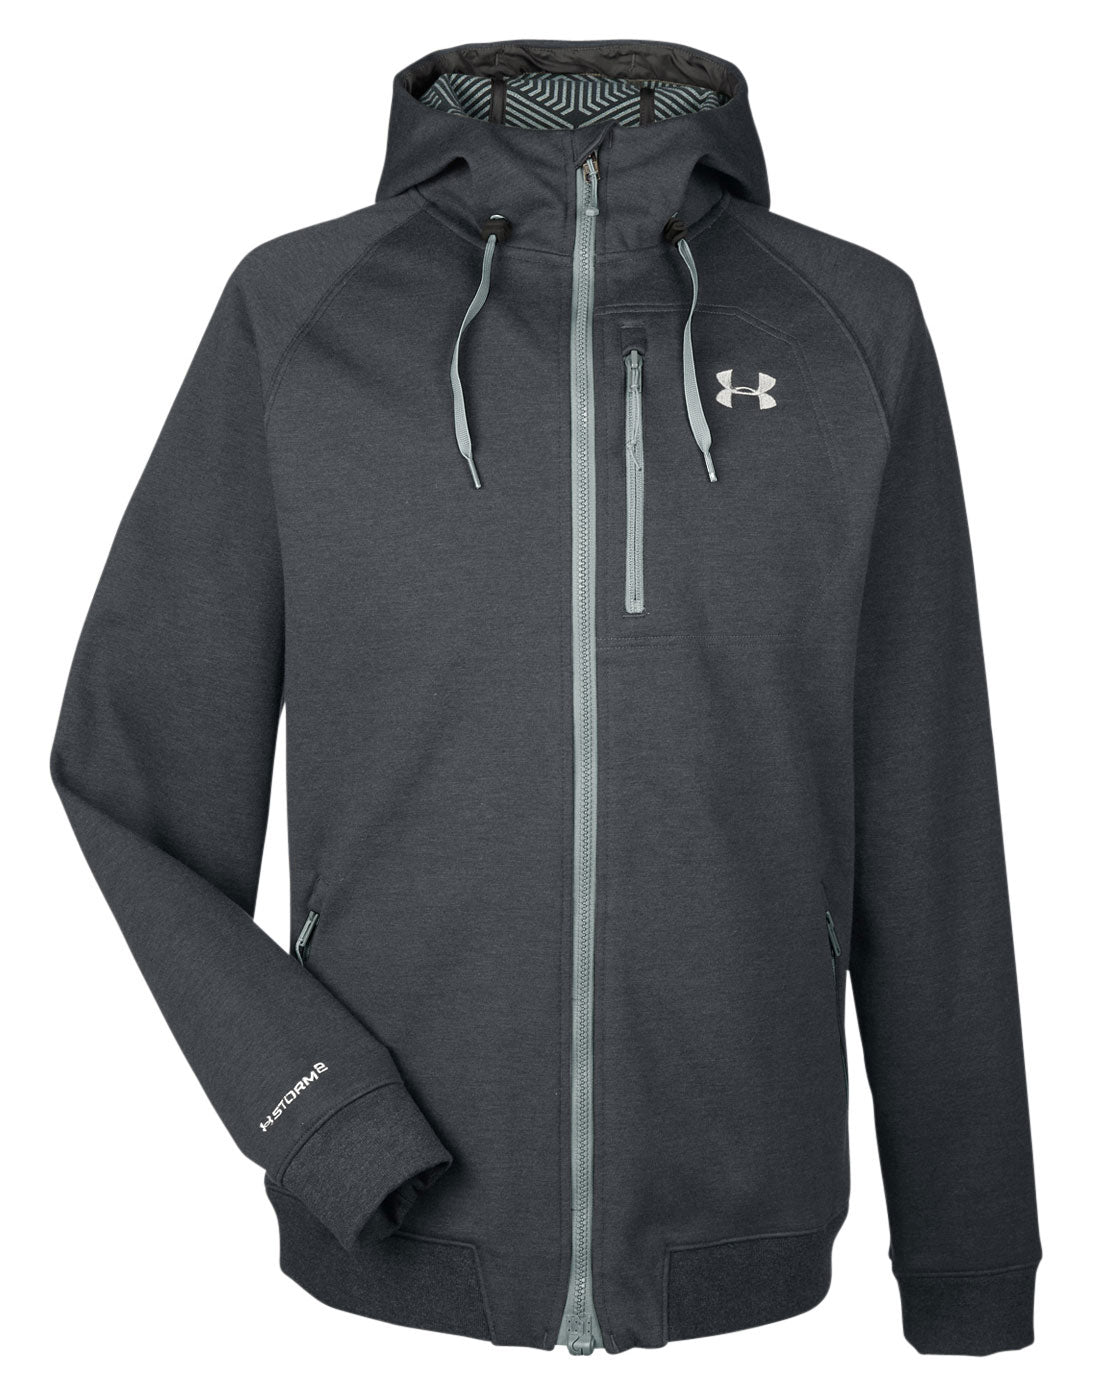 5X3/Under Armour CGI Dobson Soft Shell Jacket